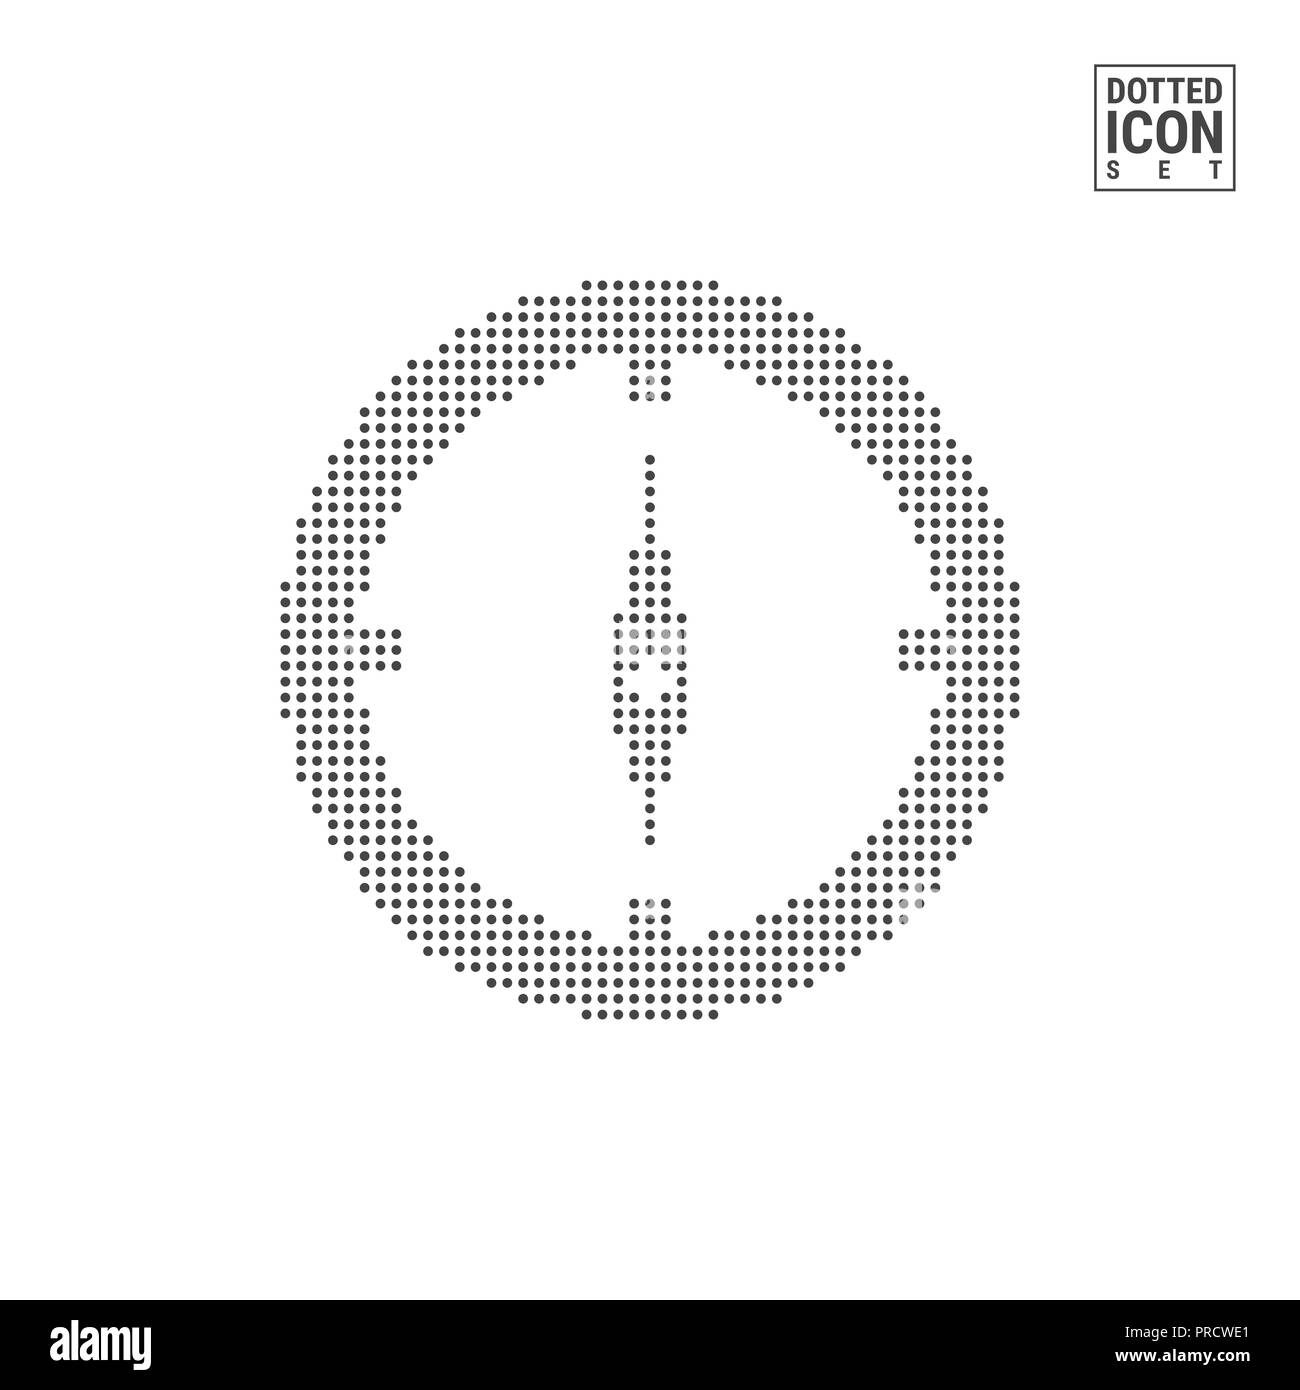 Compass Dot Pattern Icon. Navigation Dotted Icon Isolated on White Background. Illustration of Travel. Background for Banner, Certificate, Poster Desi - Stock Image